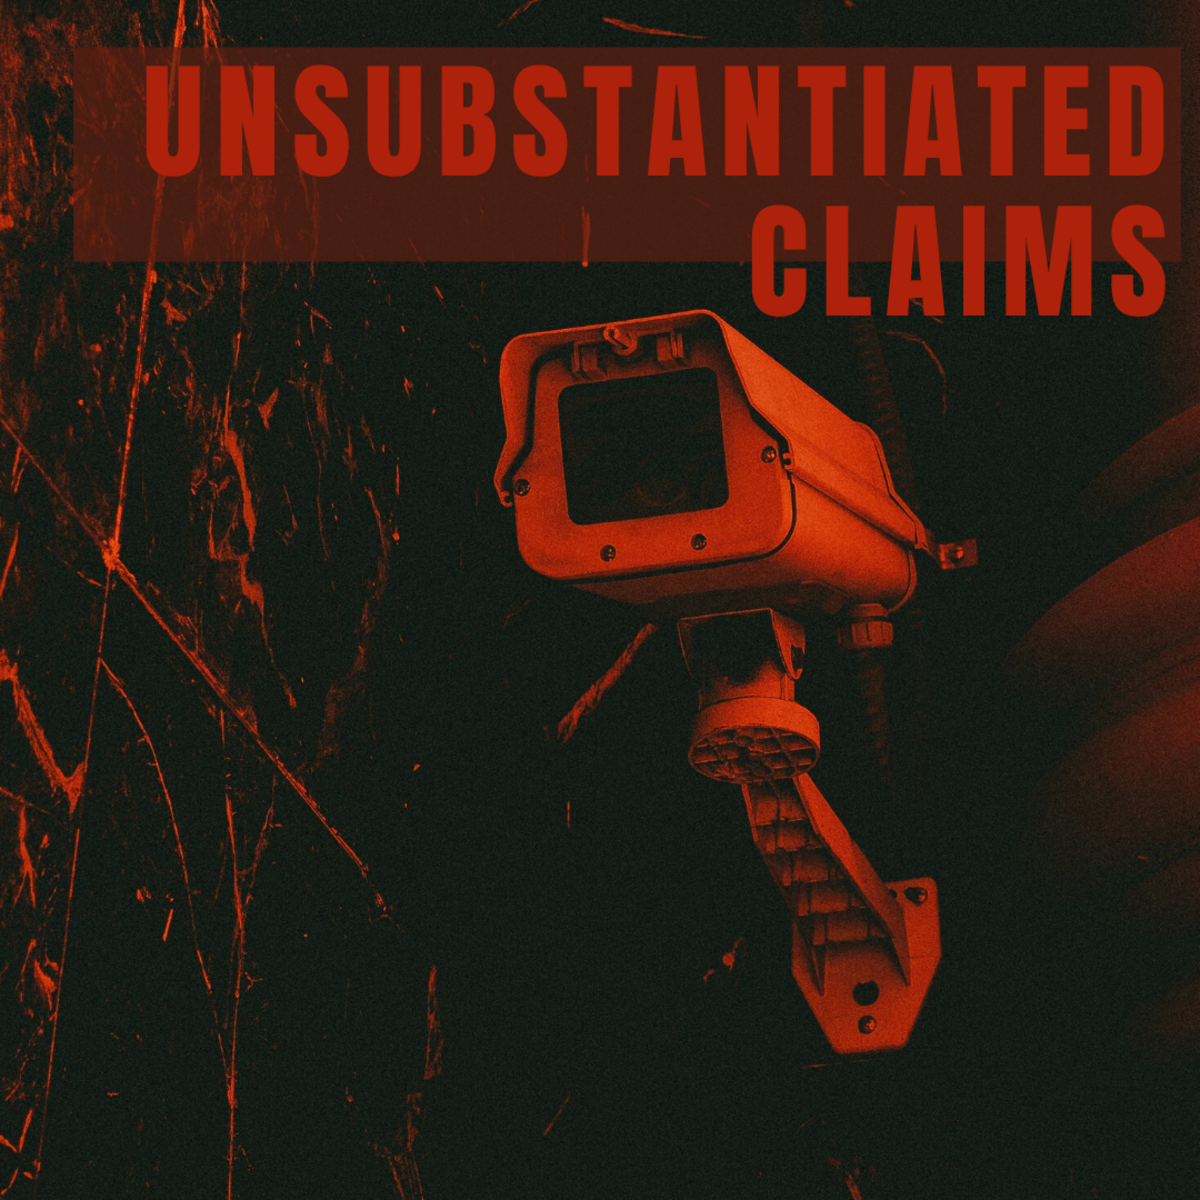 Unsubstantiated Claims: What to Do If You Believe You're Not Guilty